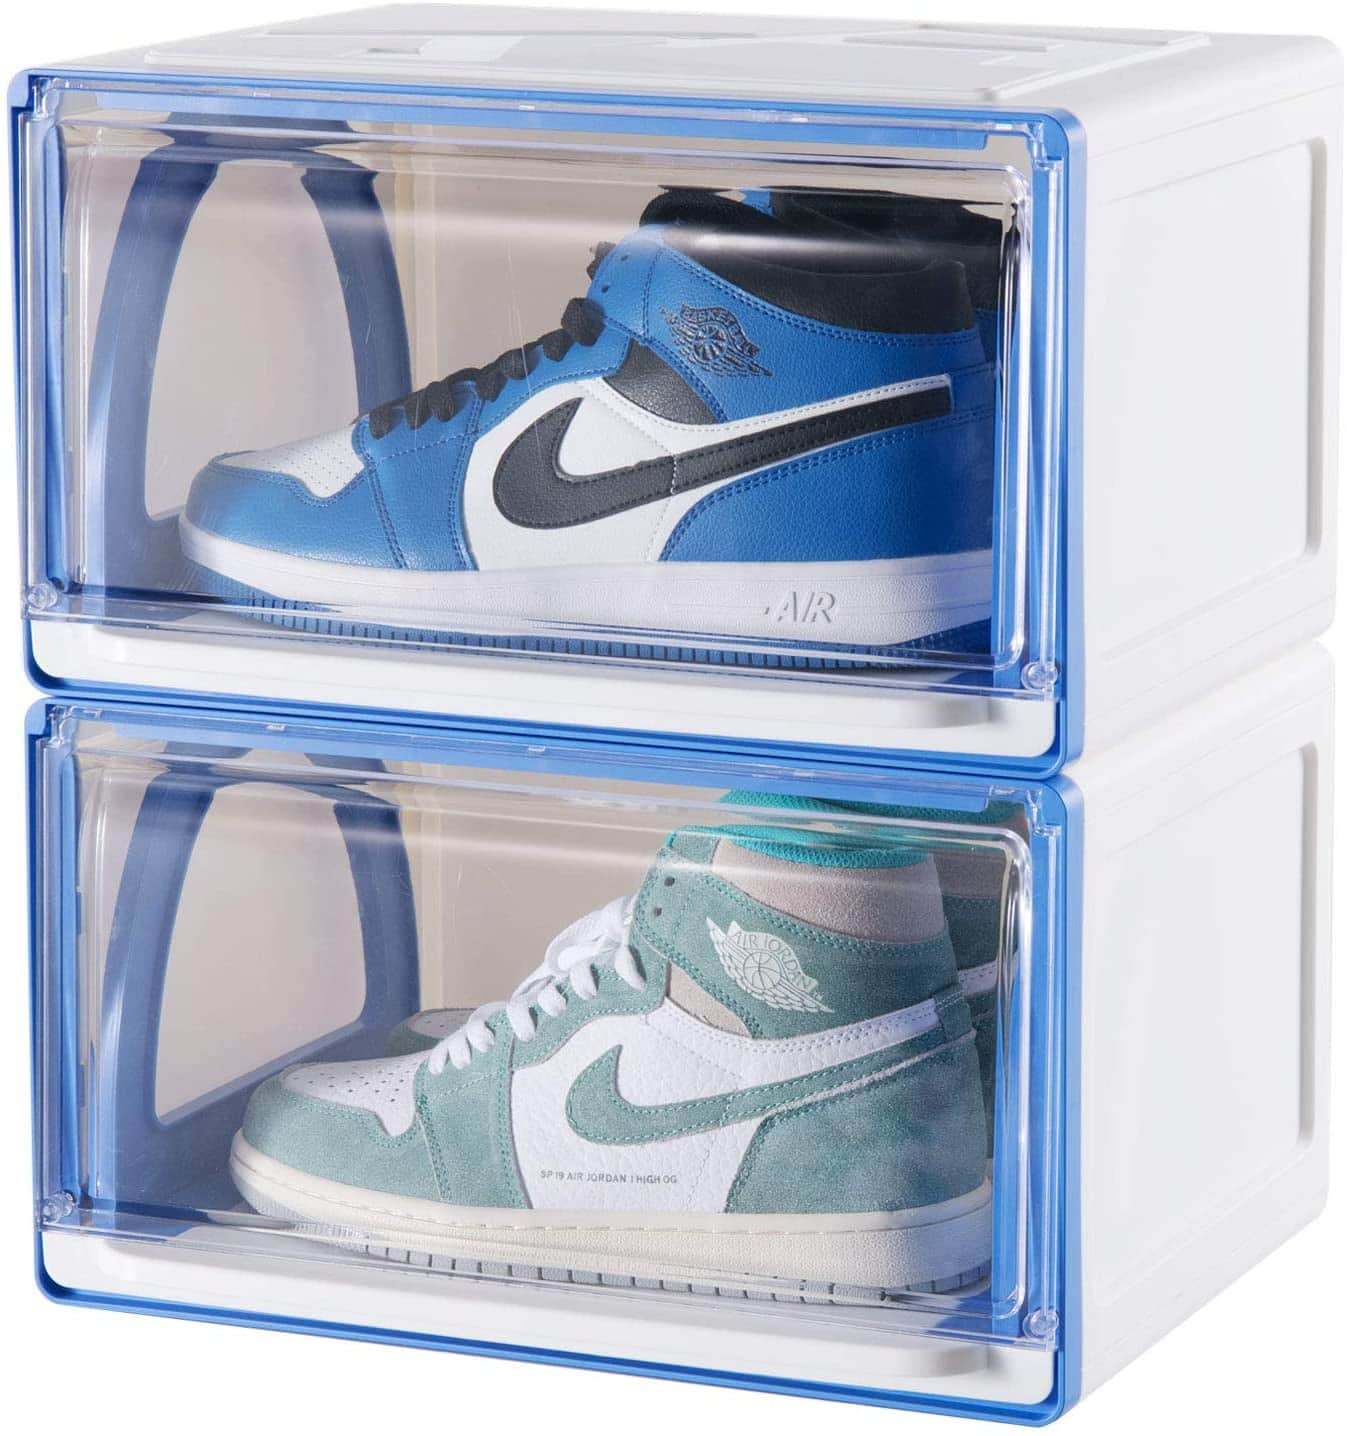 This shoe organizer can make your expensive and favorite shoes a good collection and display